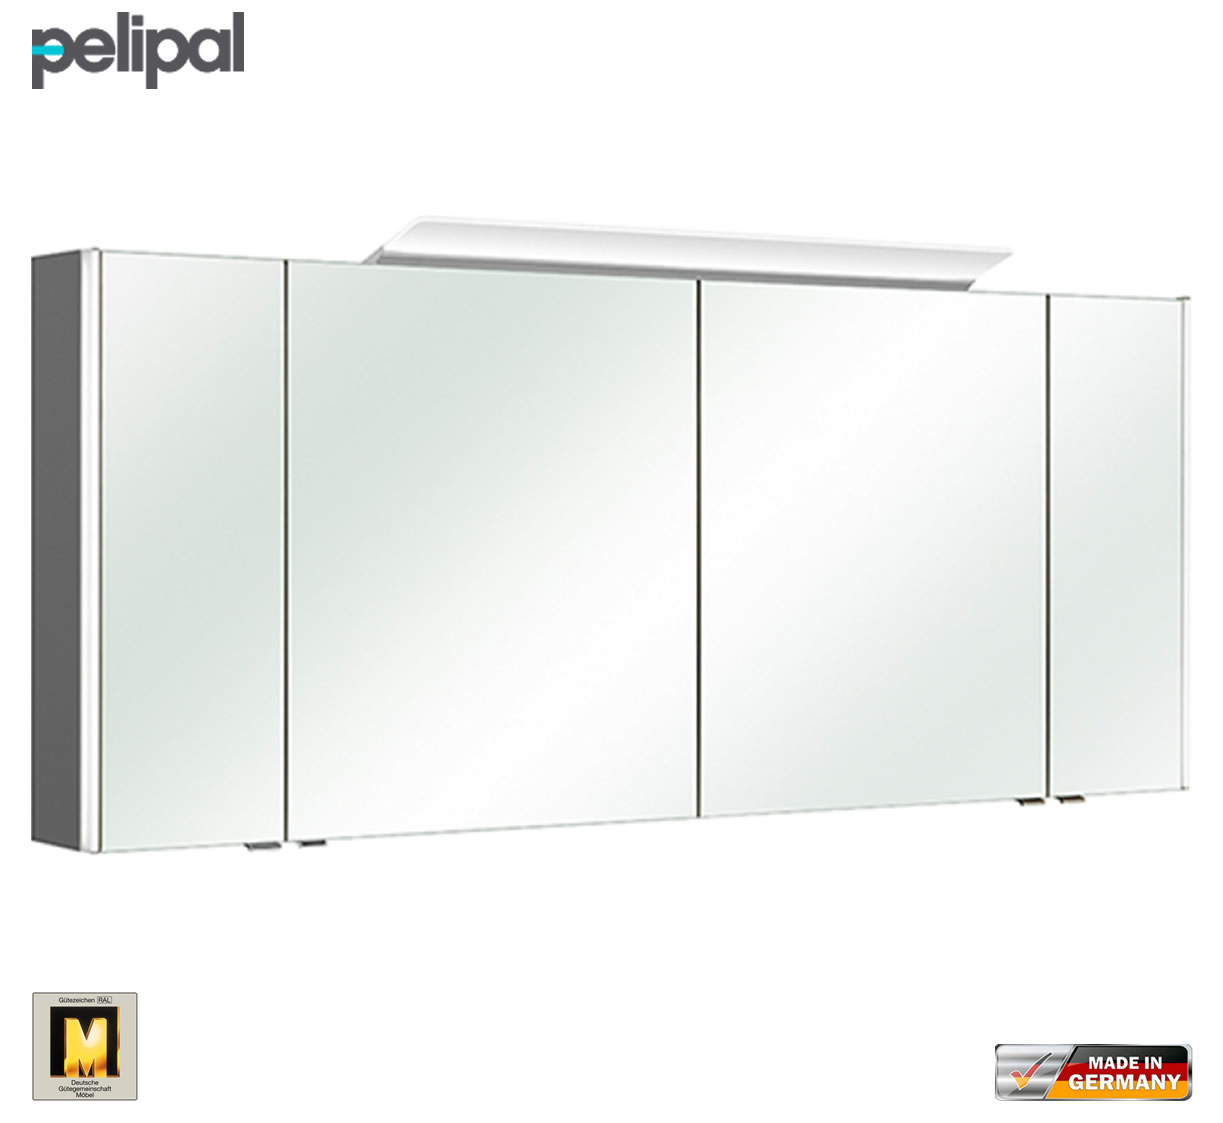 pelipal neutraler spiegelschrank s10 ledplus 172 cm mit led aufbauleuchte impulsbad. Black Bedroom Furniture Sets. Home Design Ideas